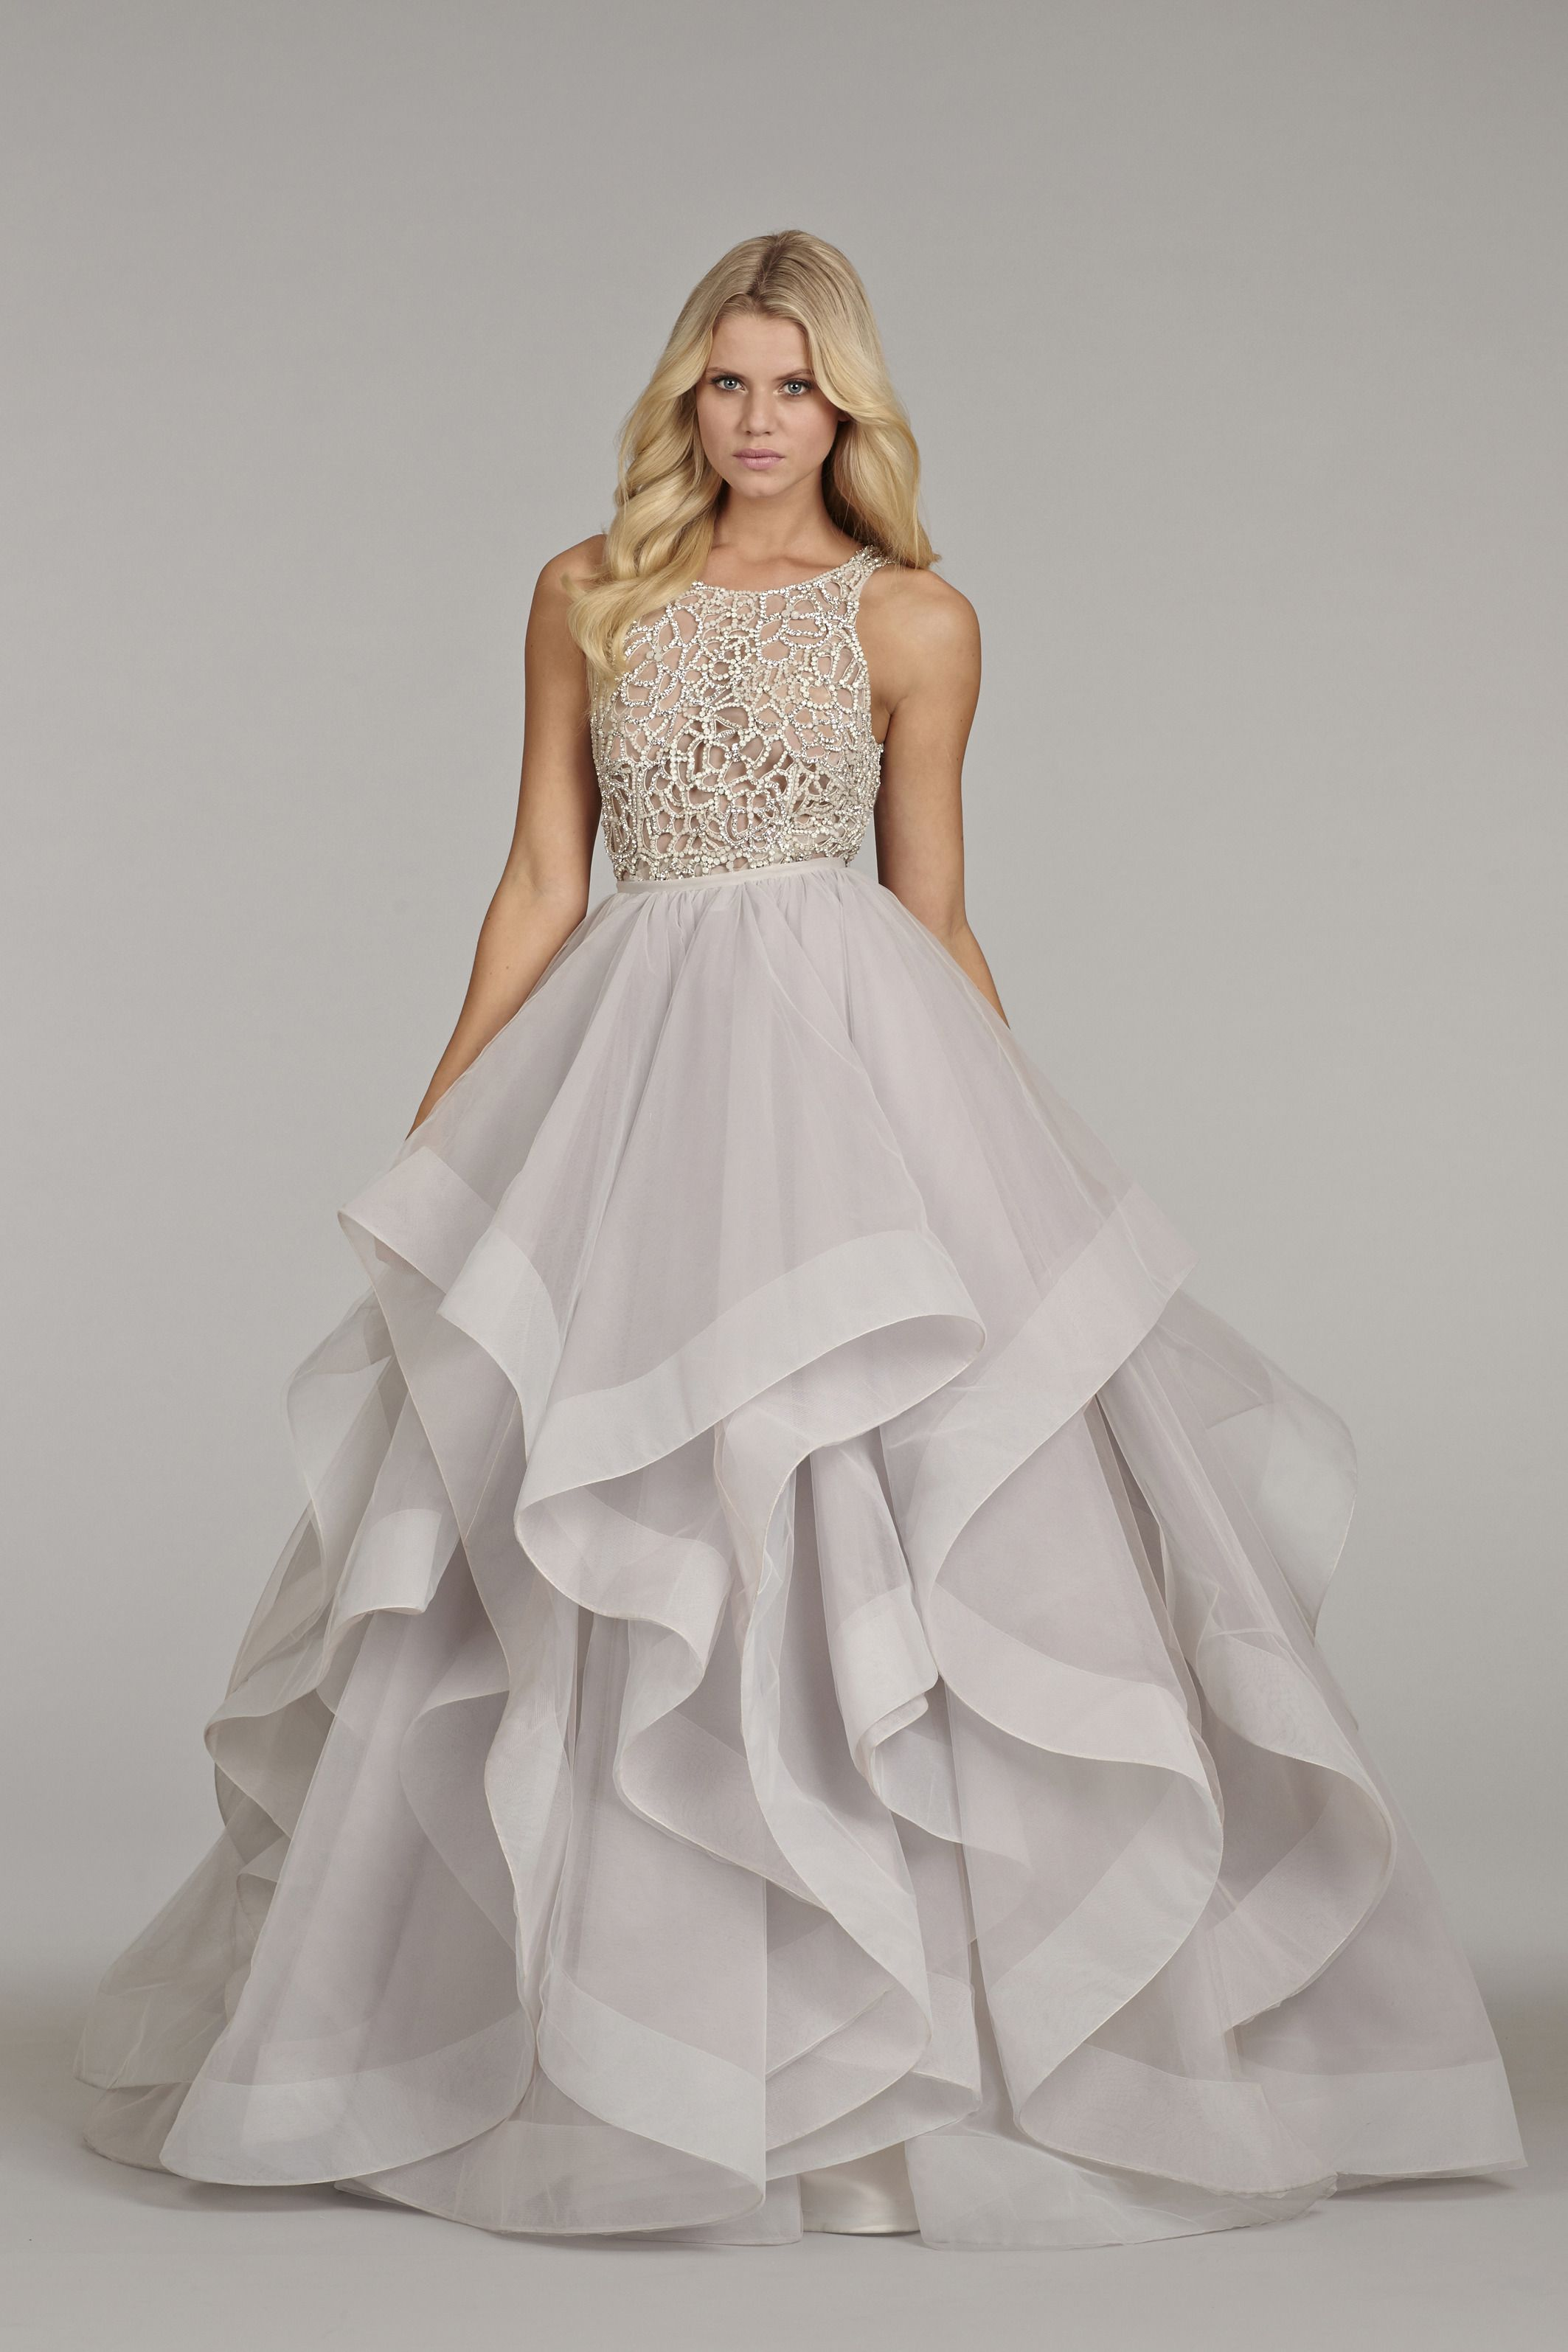 Alabaster Tulle Bridal Gown With Halter High Neck And Crystal Bodice Full Horse Hair Flounced Skirt Chapel Train